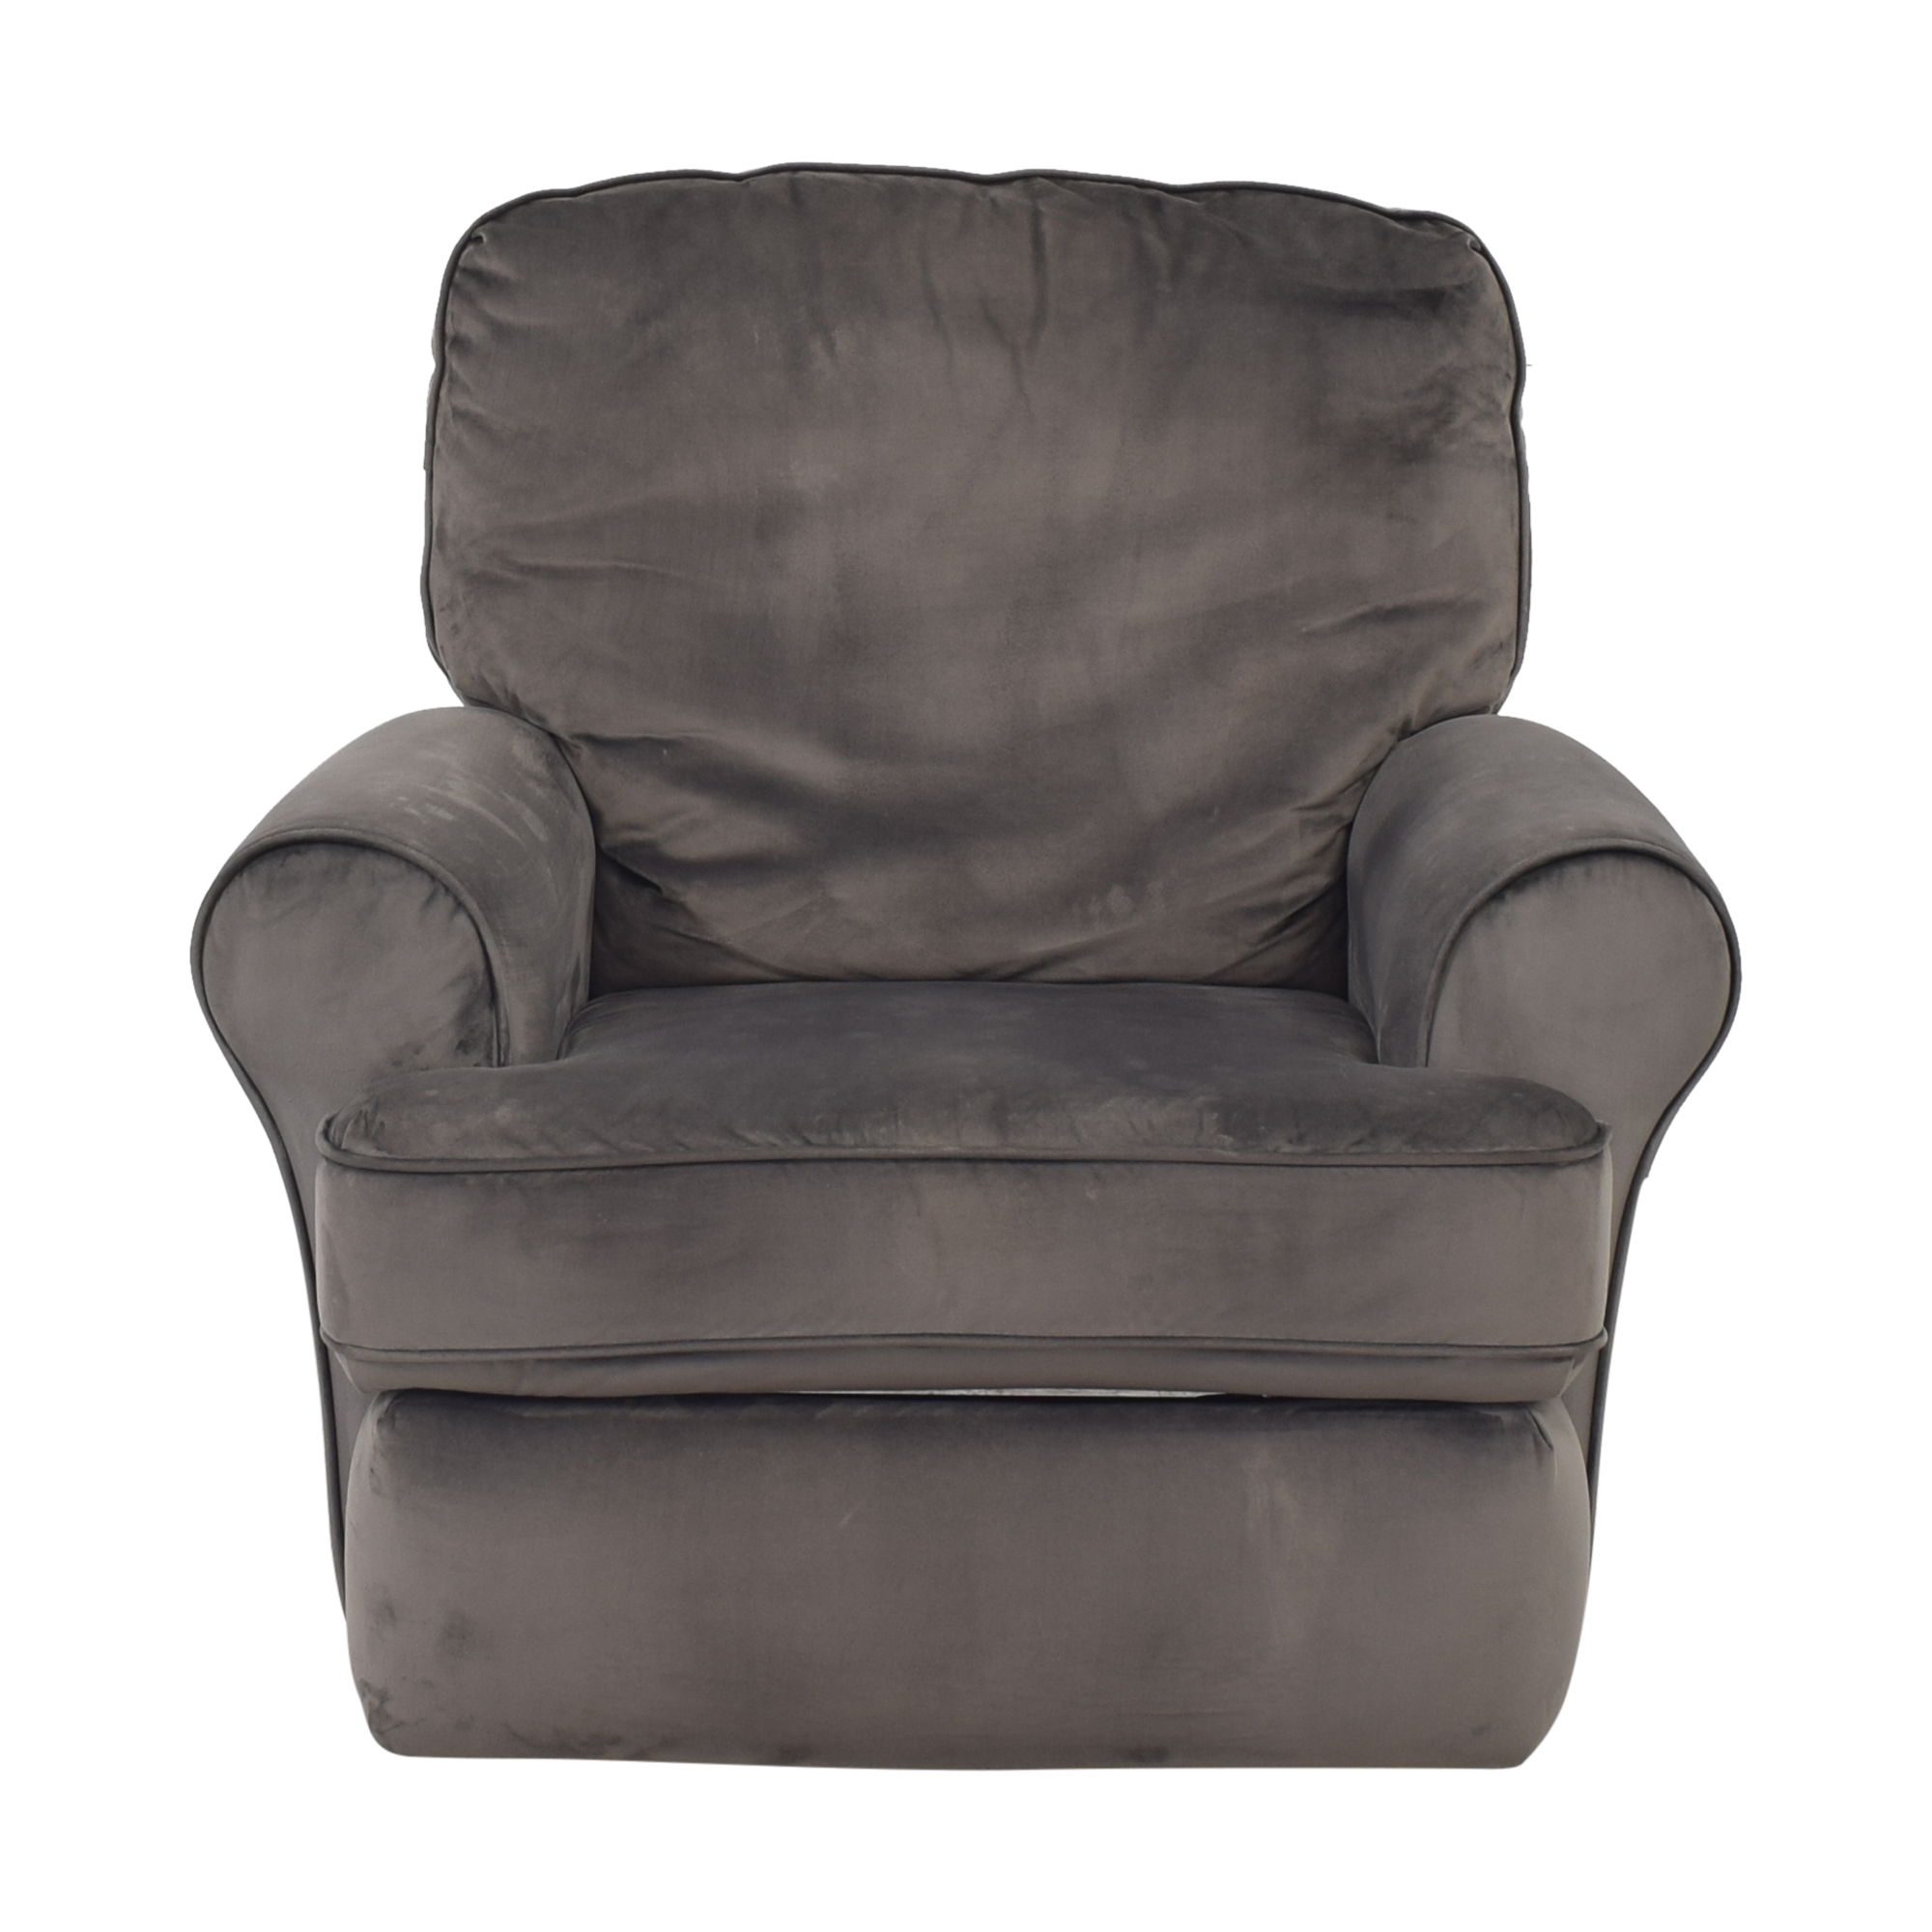 Best Chairs Best Chairs Tryp Swivel Glider Recliner